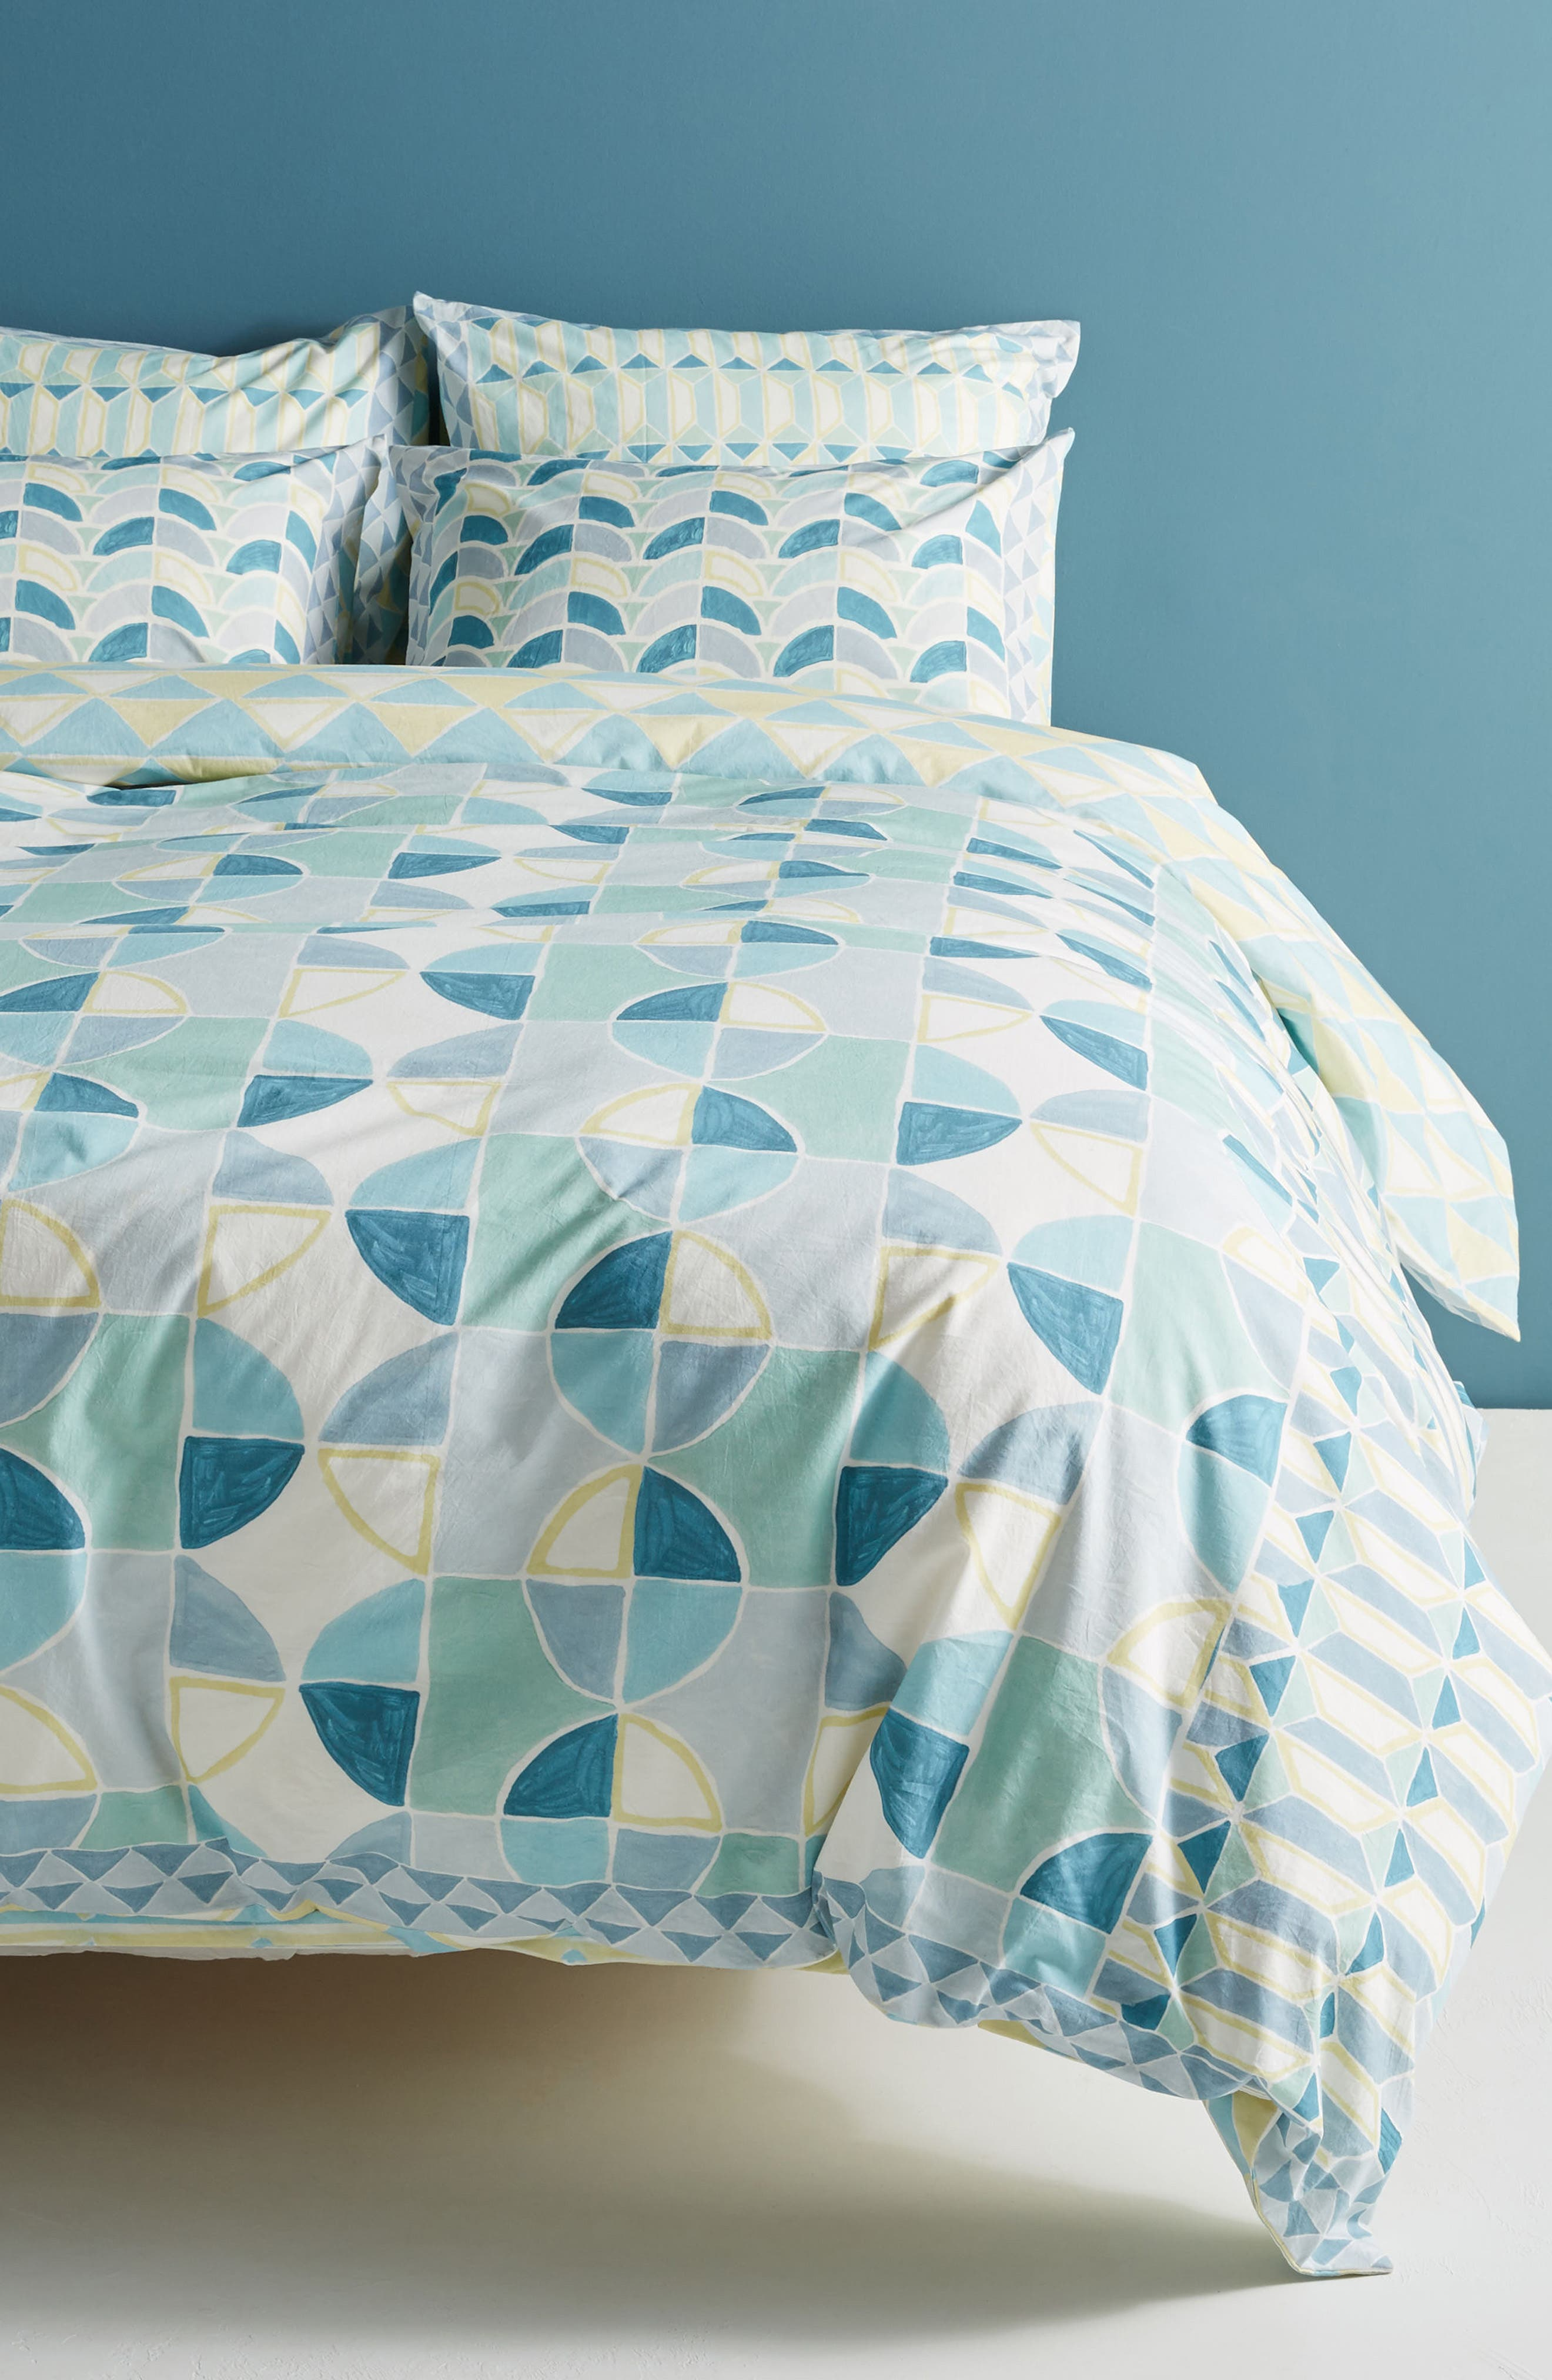 Rayne Duvet Cover,                         Main,                         color, 400